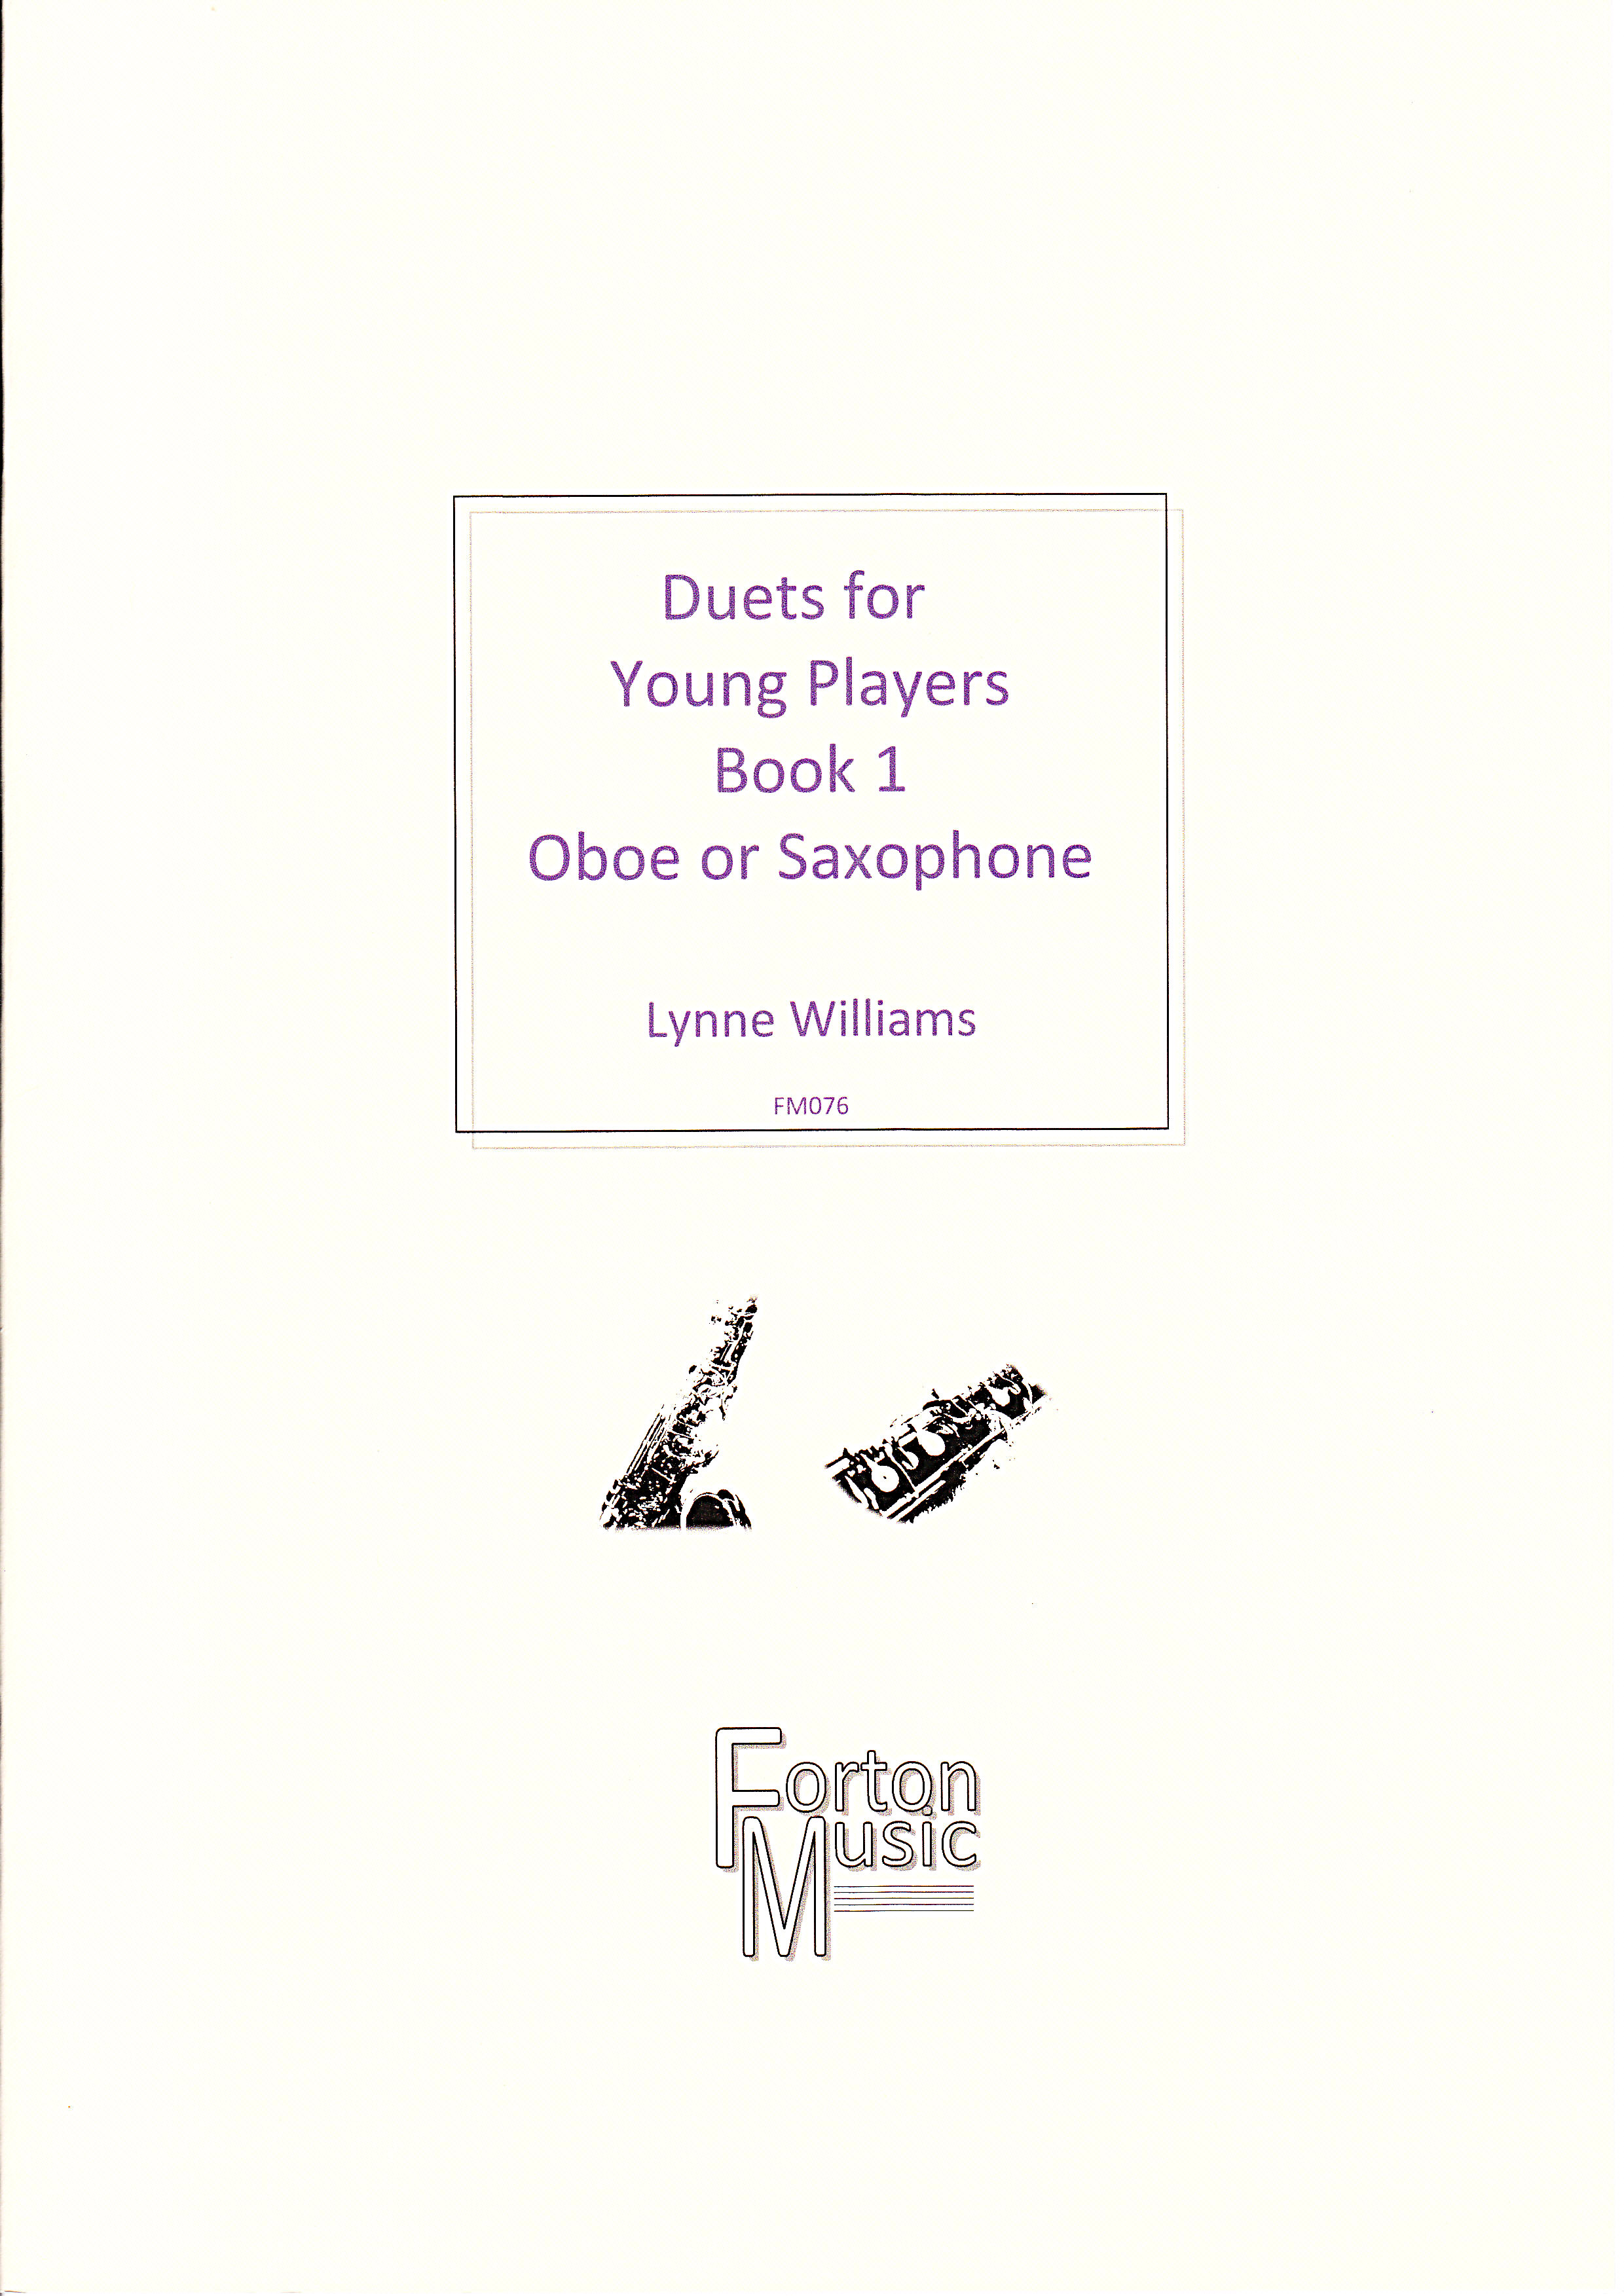 DUETS FOR YOUNG PLAYERS Book 1